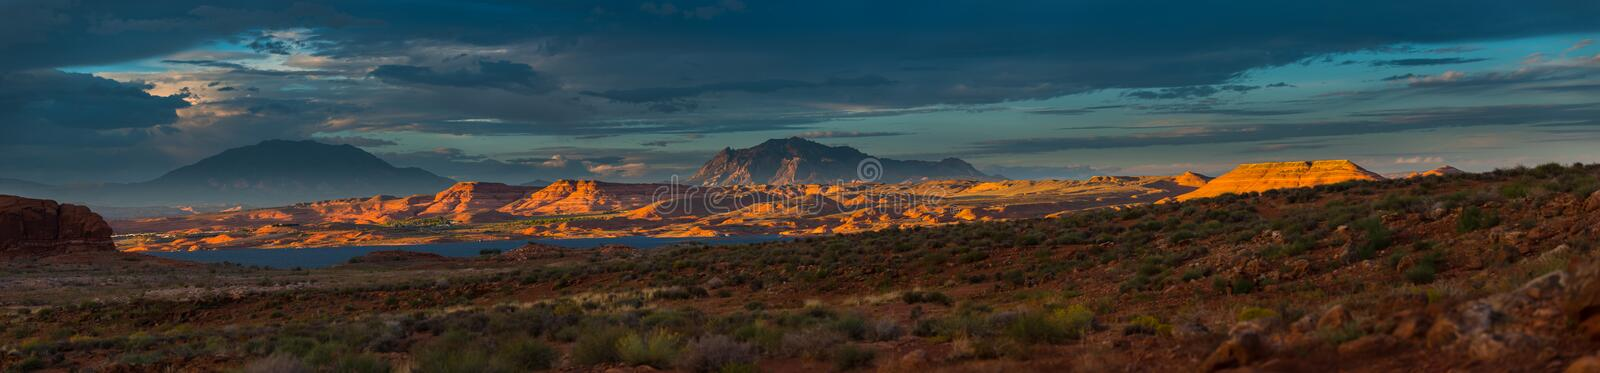 Panorama Henry Mountains, South Central Utah, United States royalty free stock images